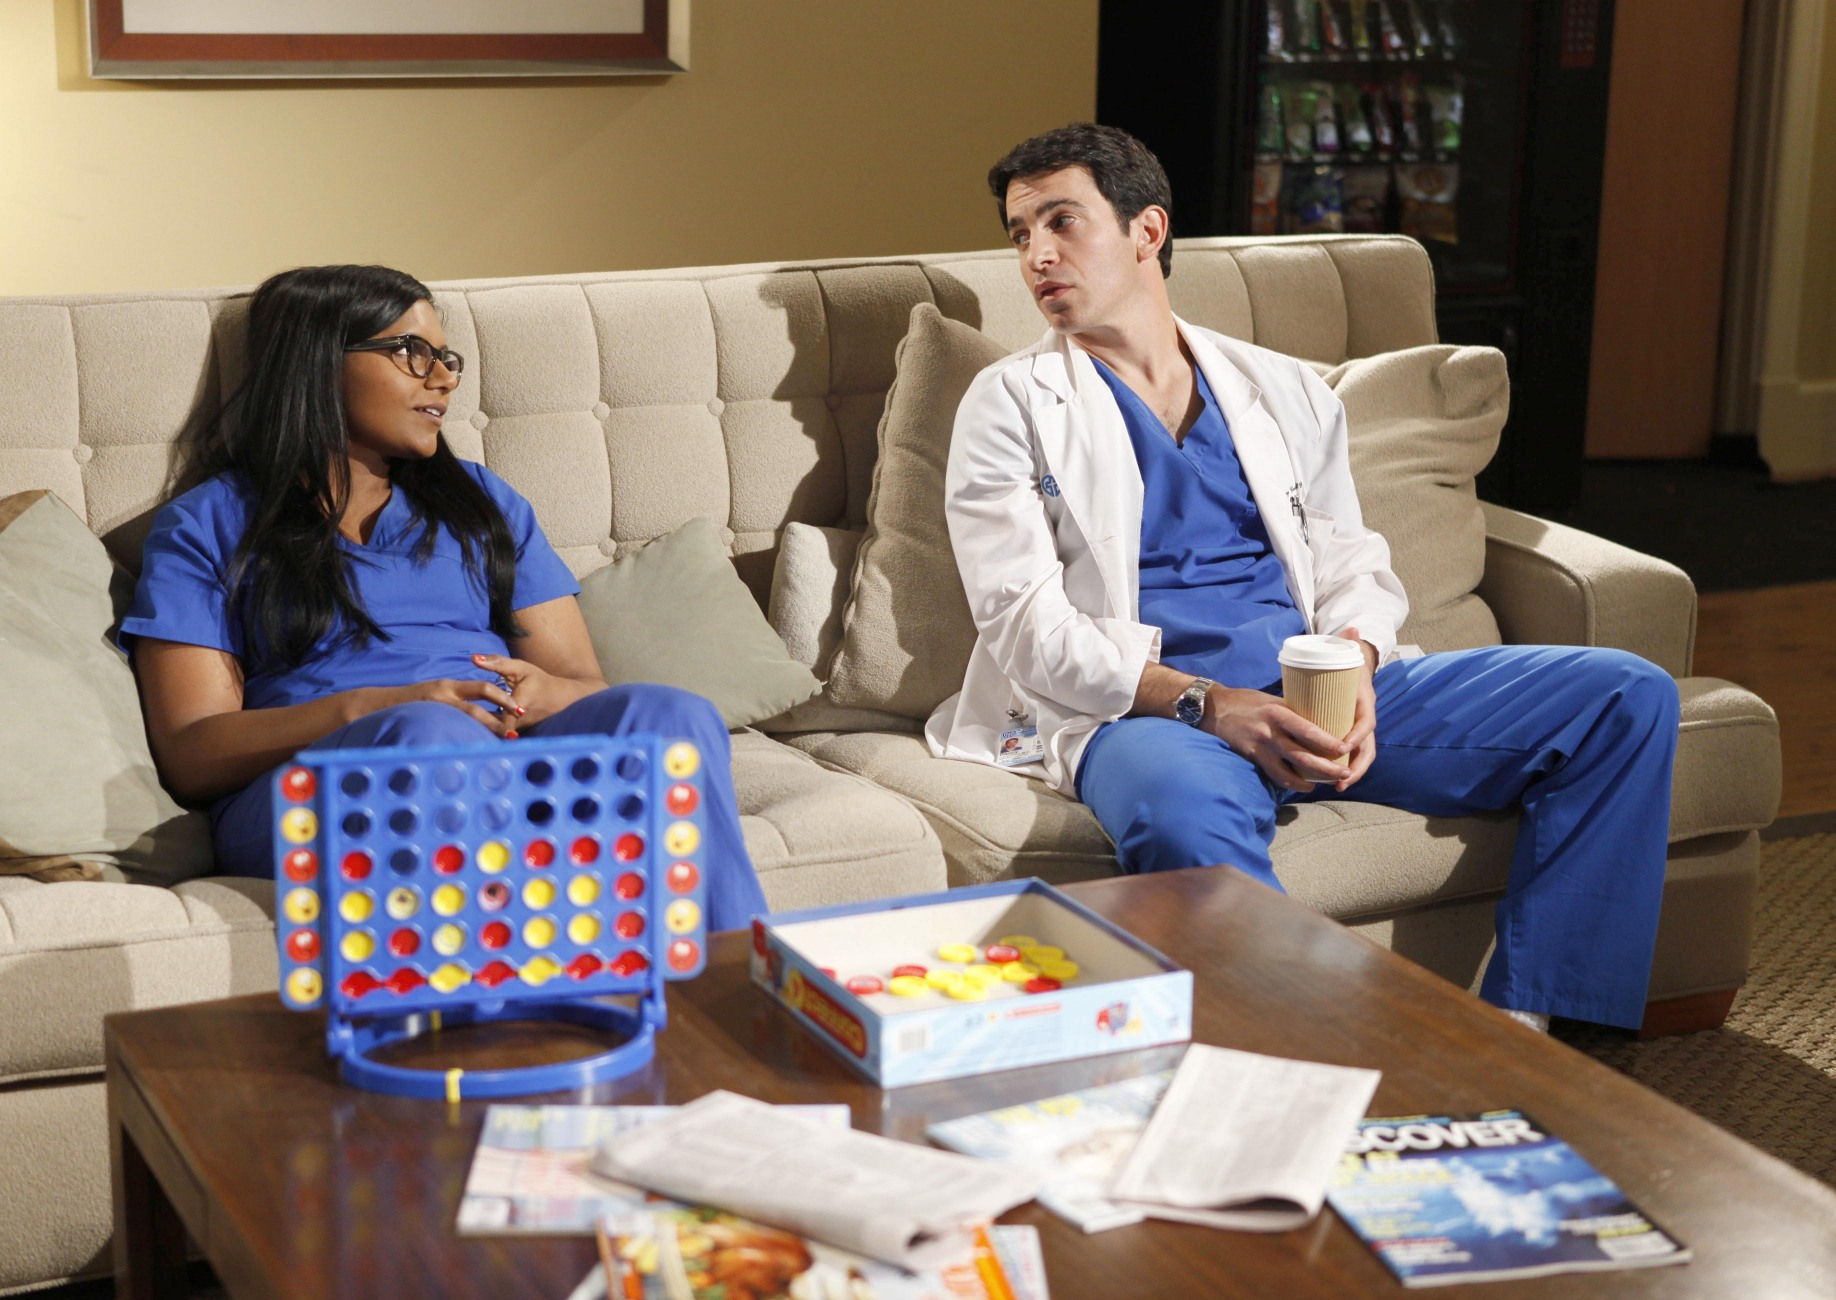 Mindy Kaling and Chris Messina on The Mindy Project.</p> <p>Photo courtesy of Fox